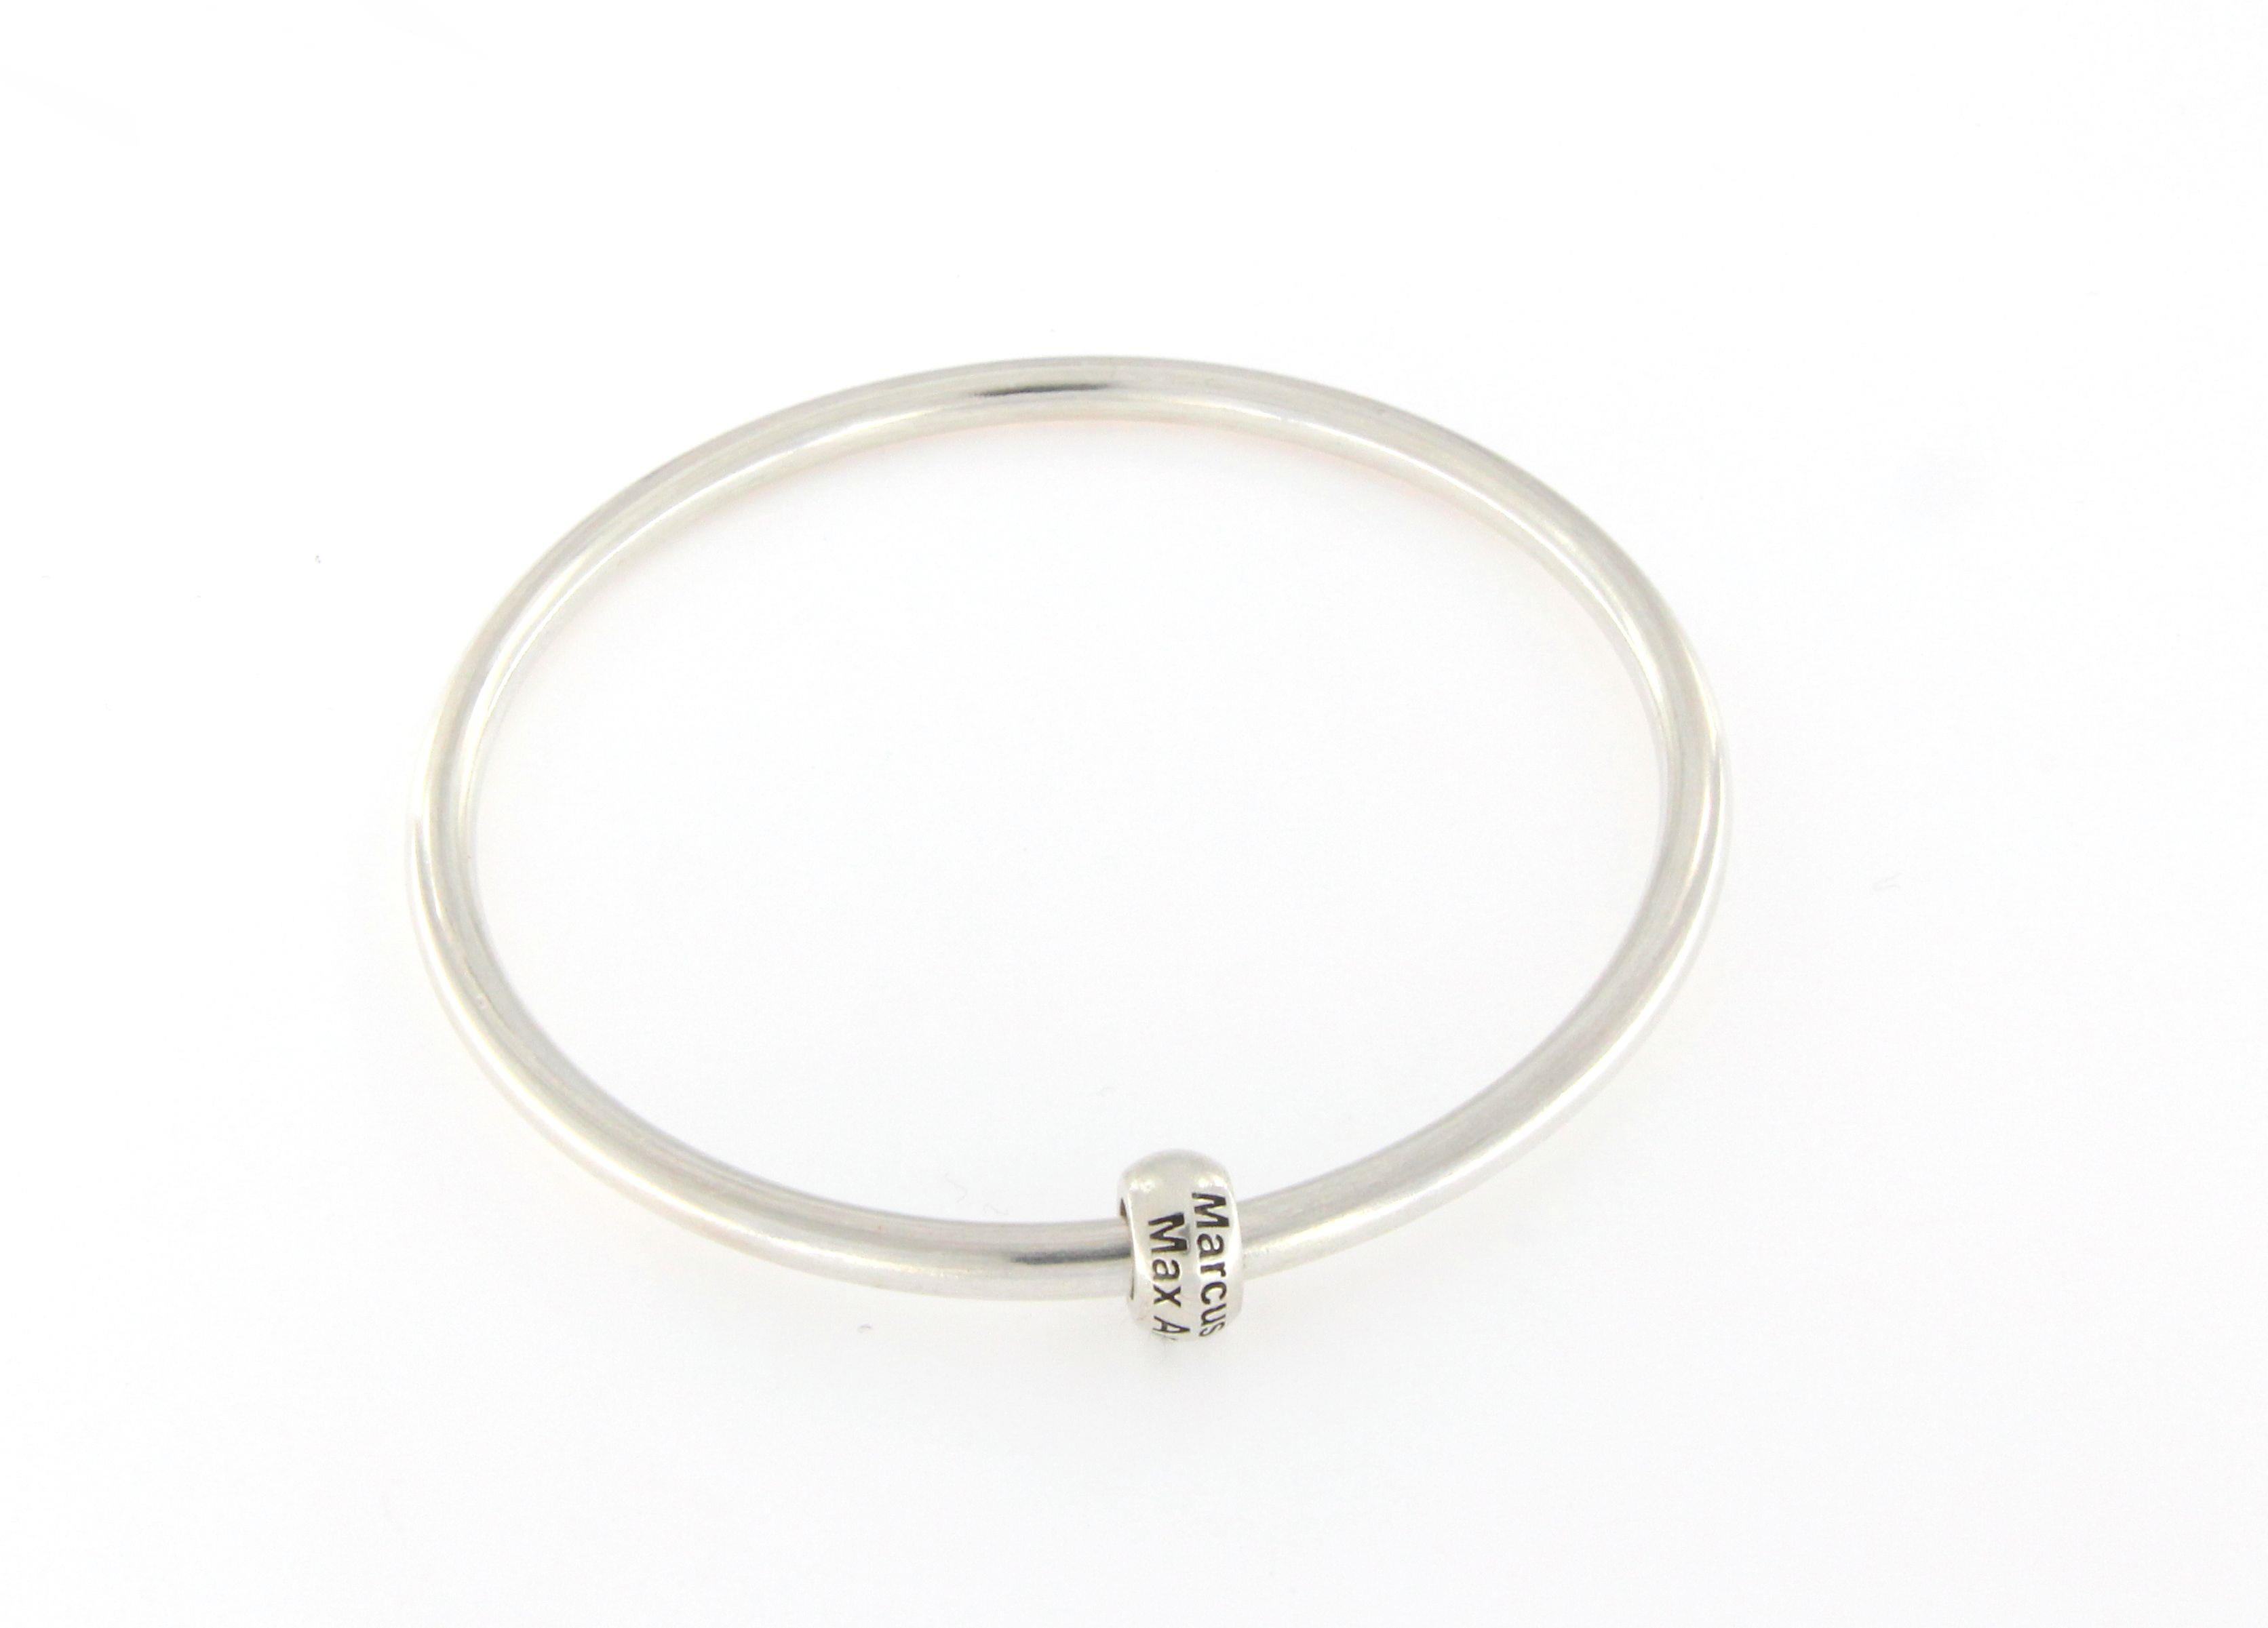 Silver bangle with family names charm